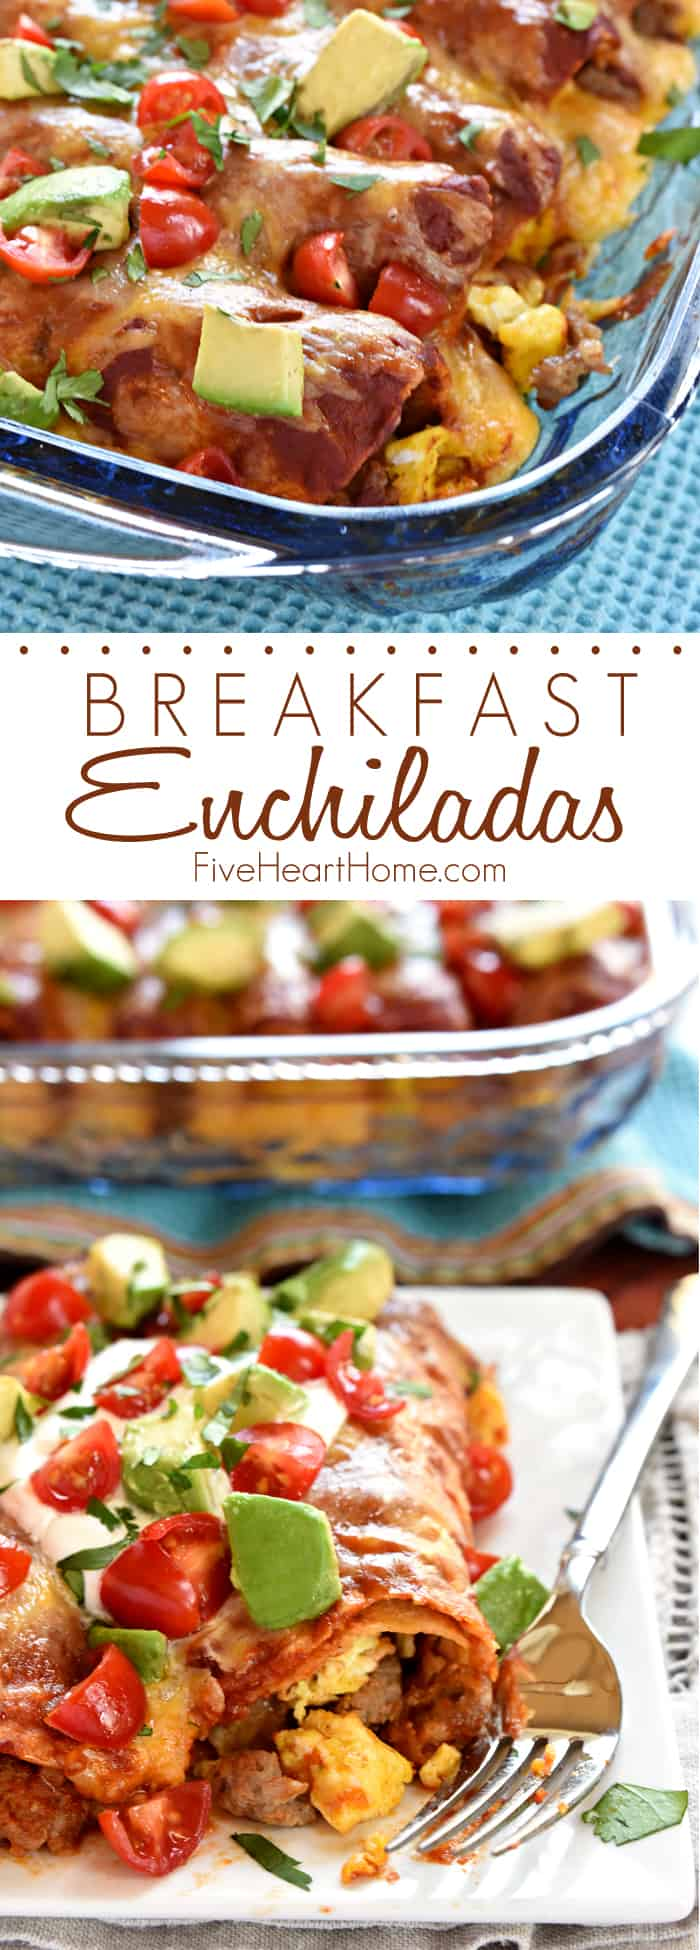 Breakfast Enchiladas Collage with Text Overlay